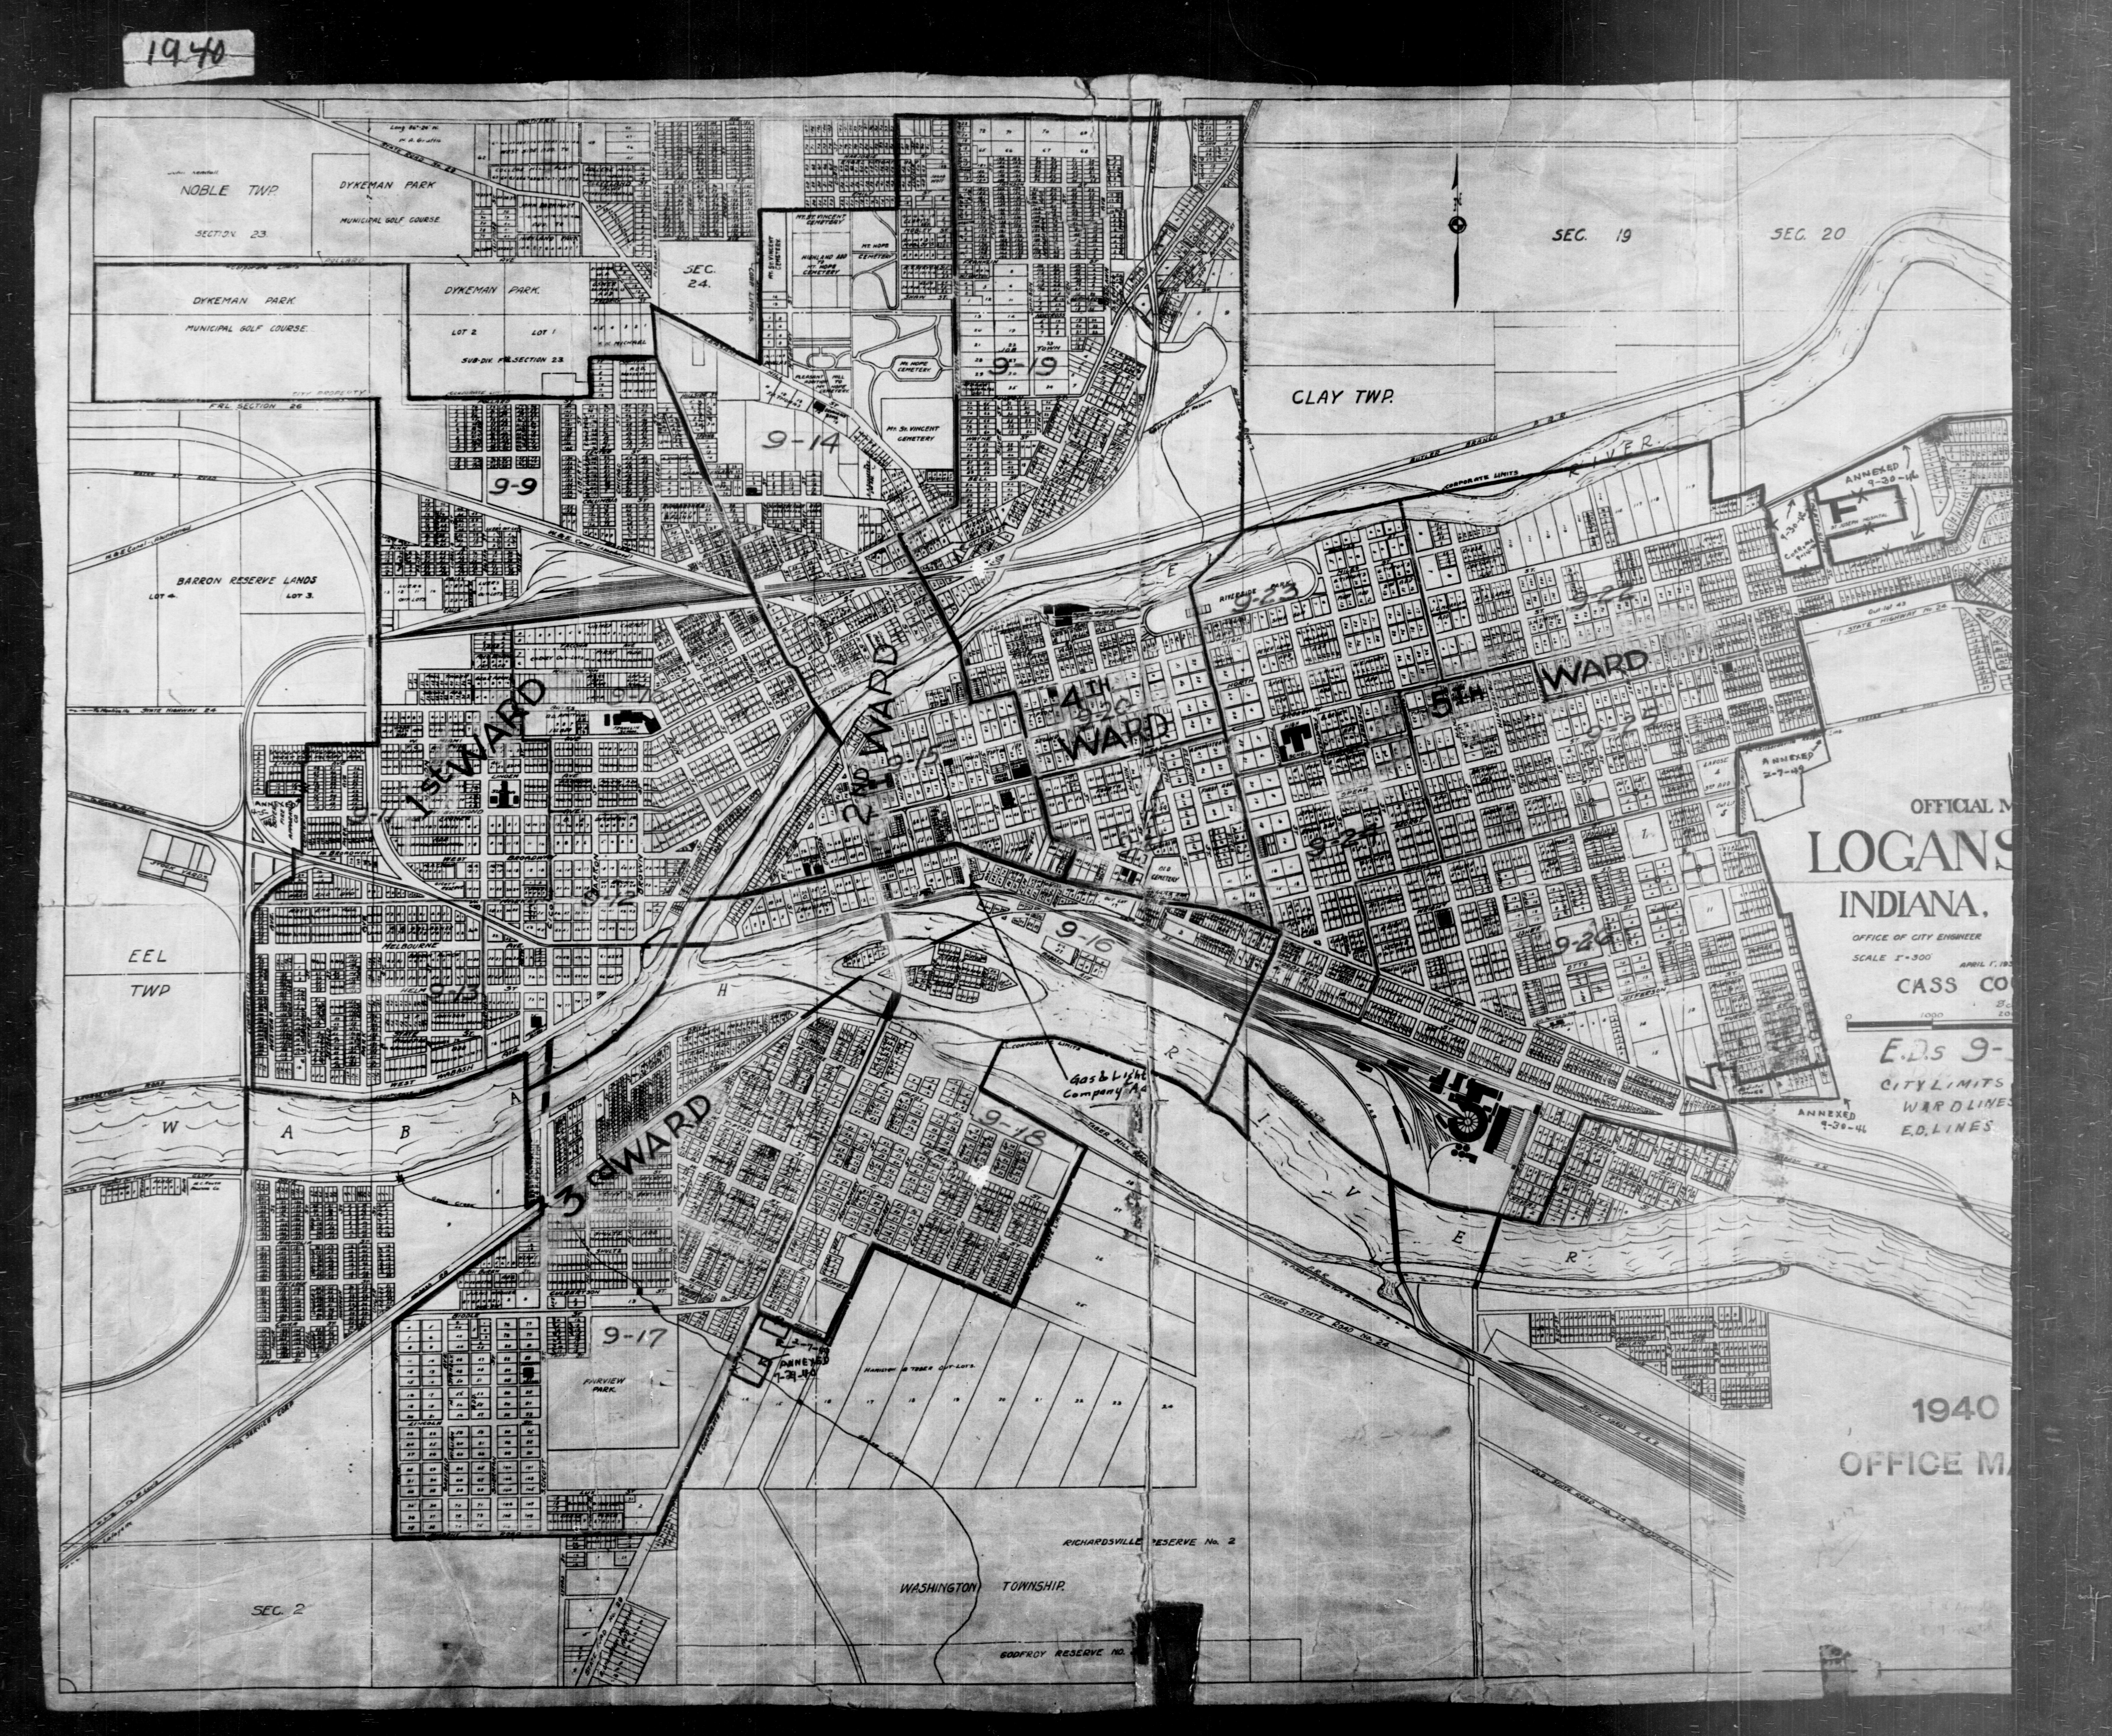 1940 Census Enumeration District Maps - Indiana - Cass County - Logansport - ED 9-9 - ED 9-26